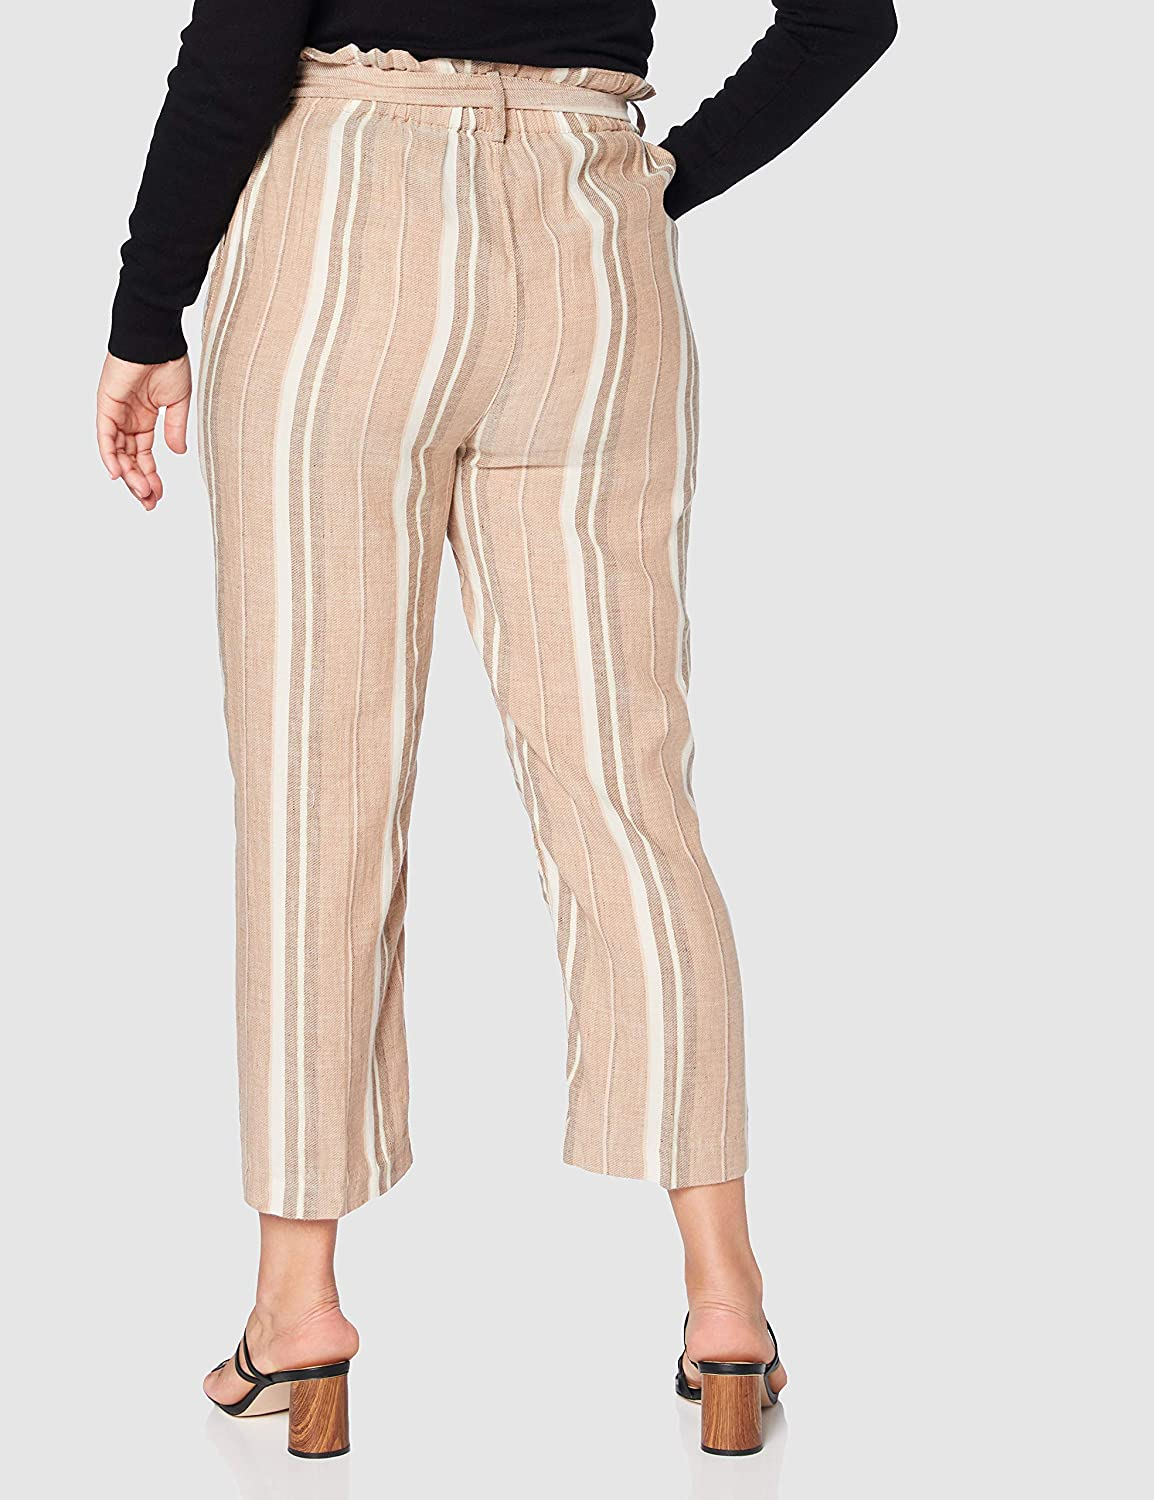 Herrlicher Comfy Multi Stripes Lurex Linen Pantalon Femme Marron (Umbra 171)